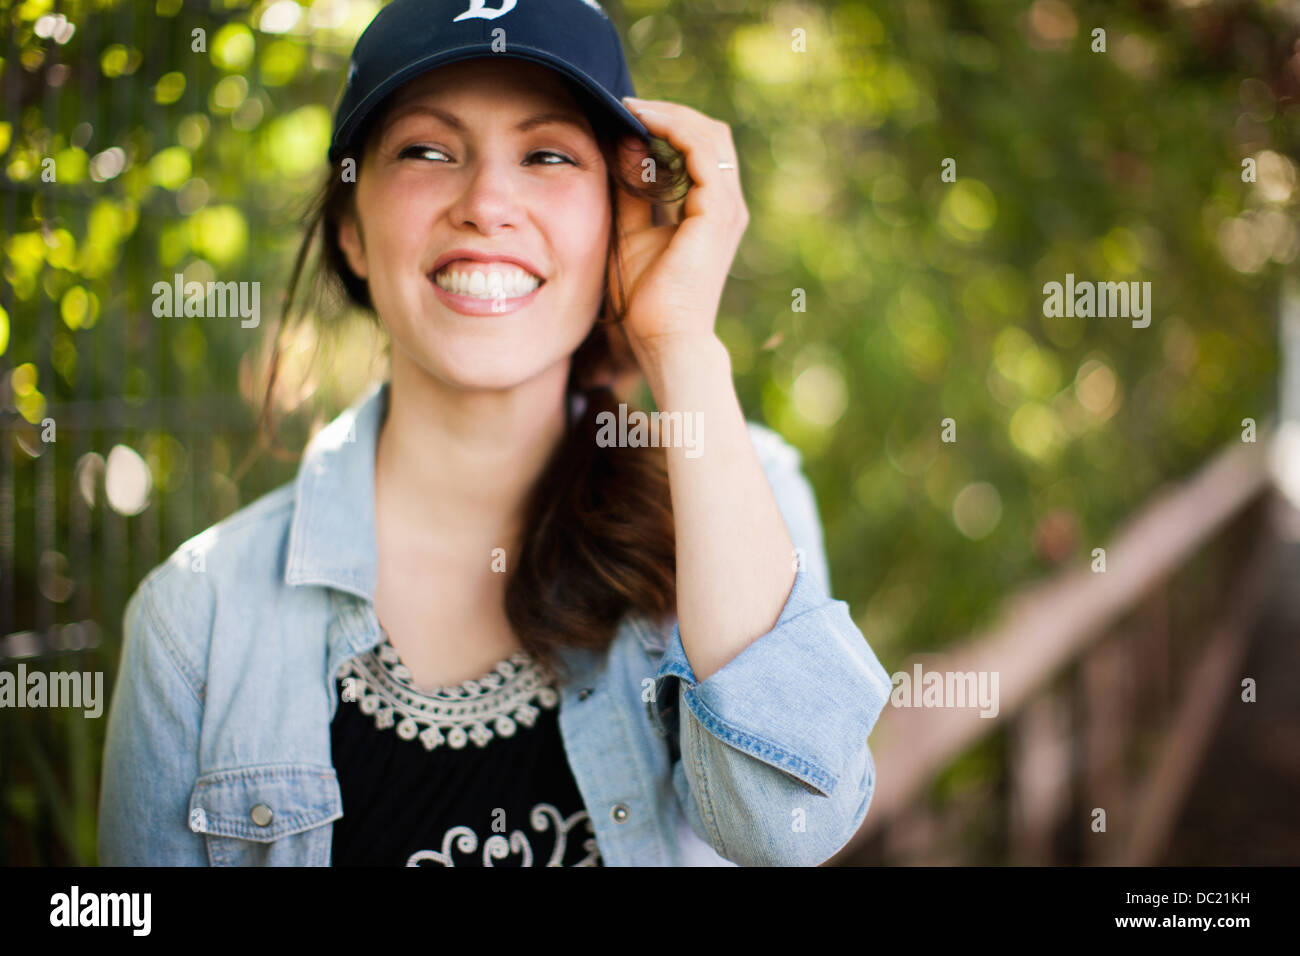 Mid adult woman wearing cap and smiling Photo Stock